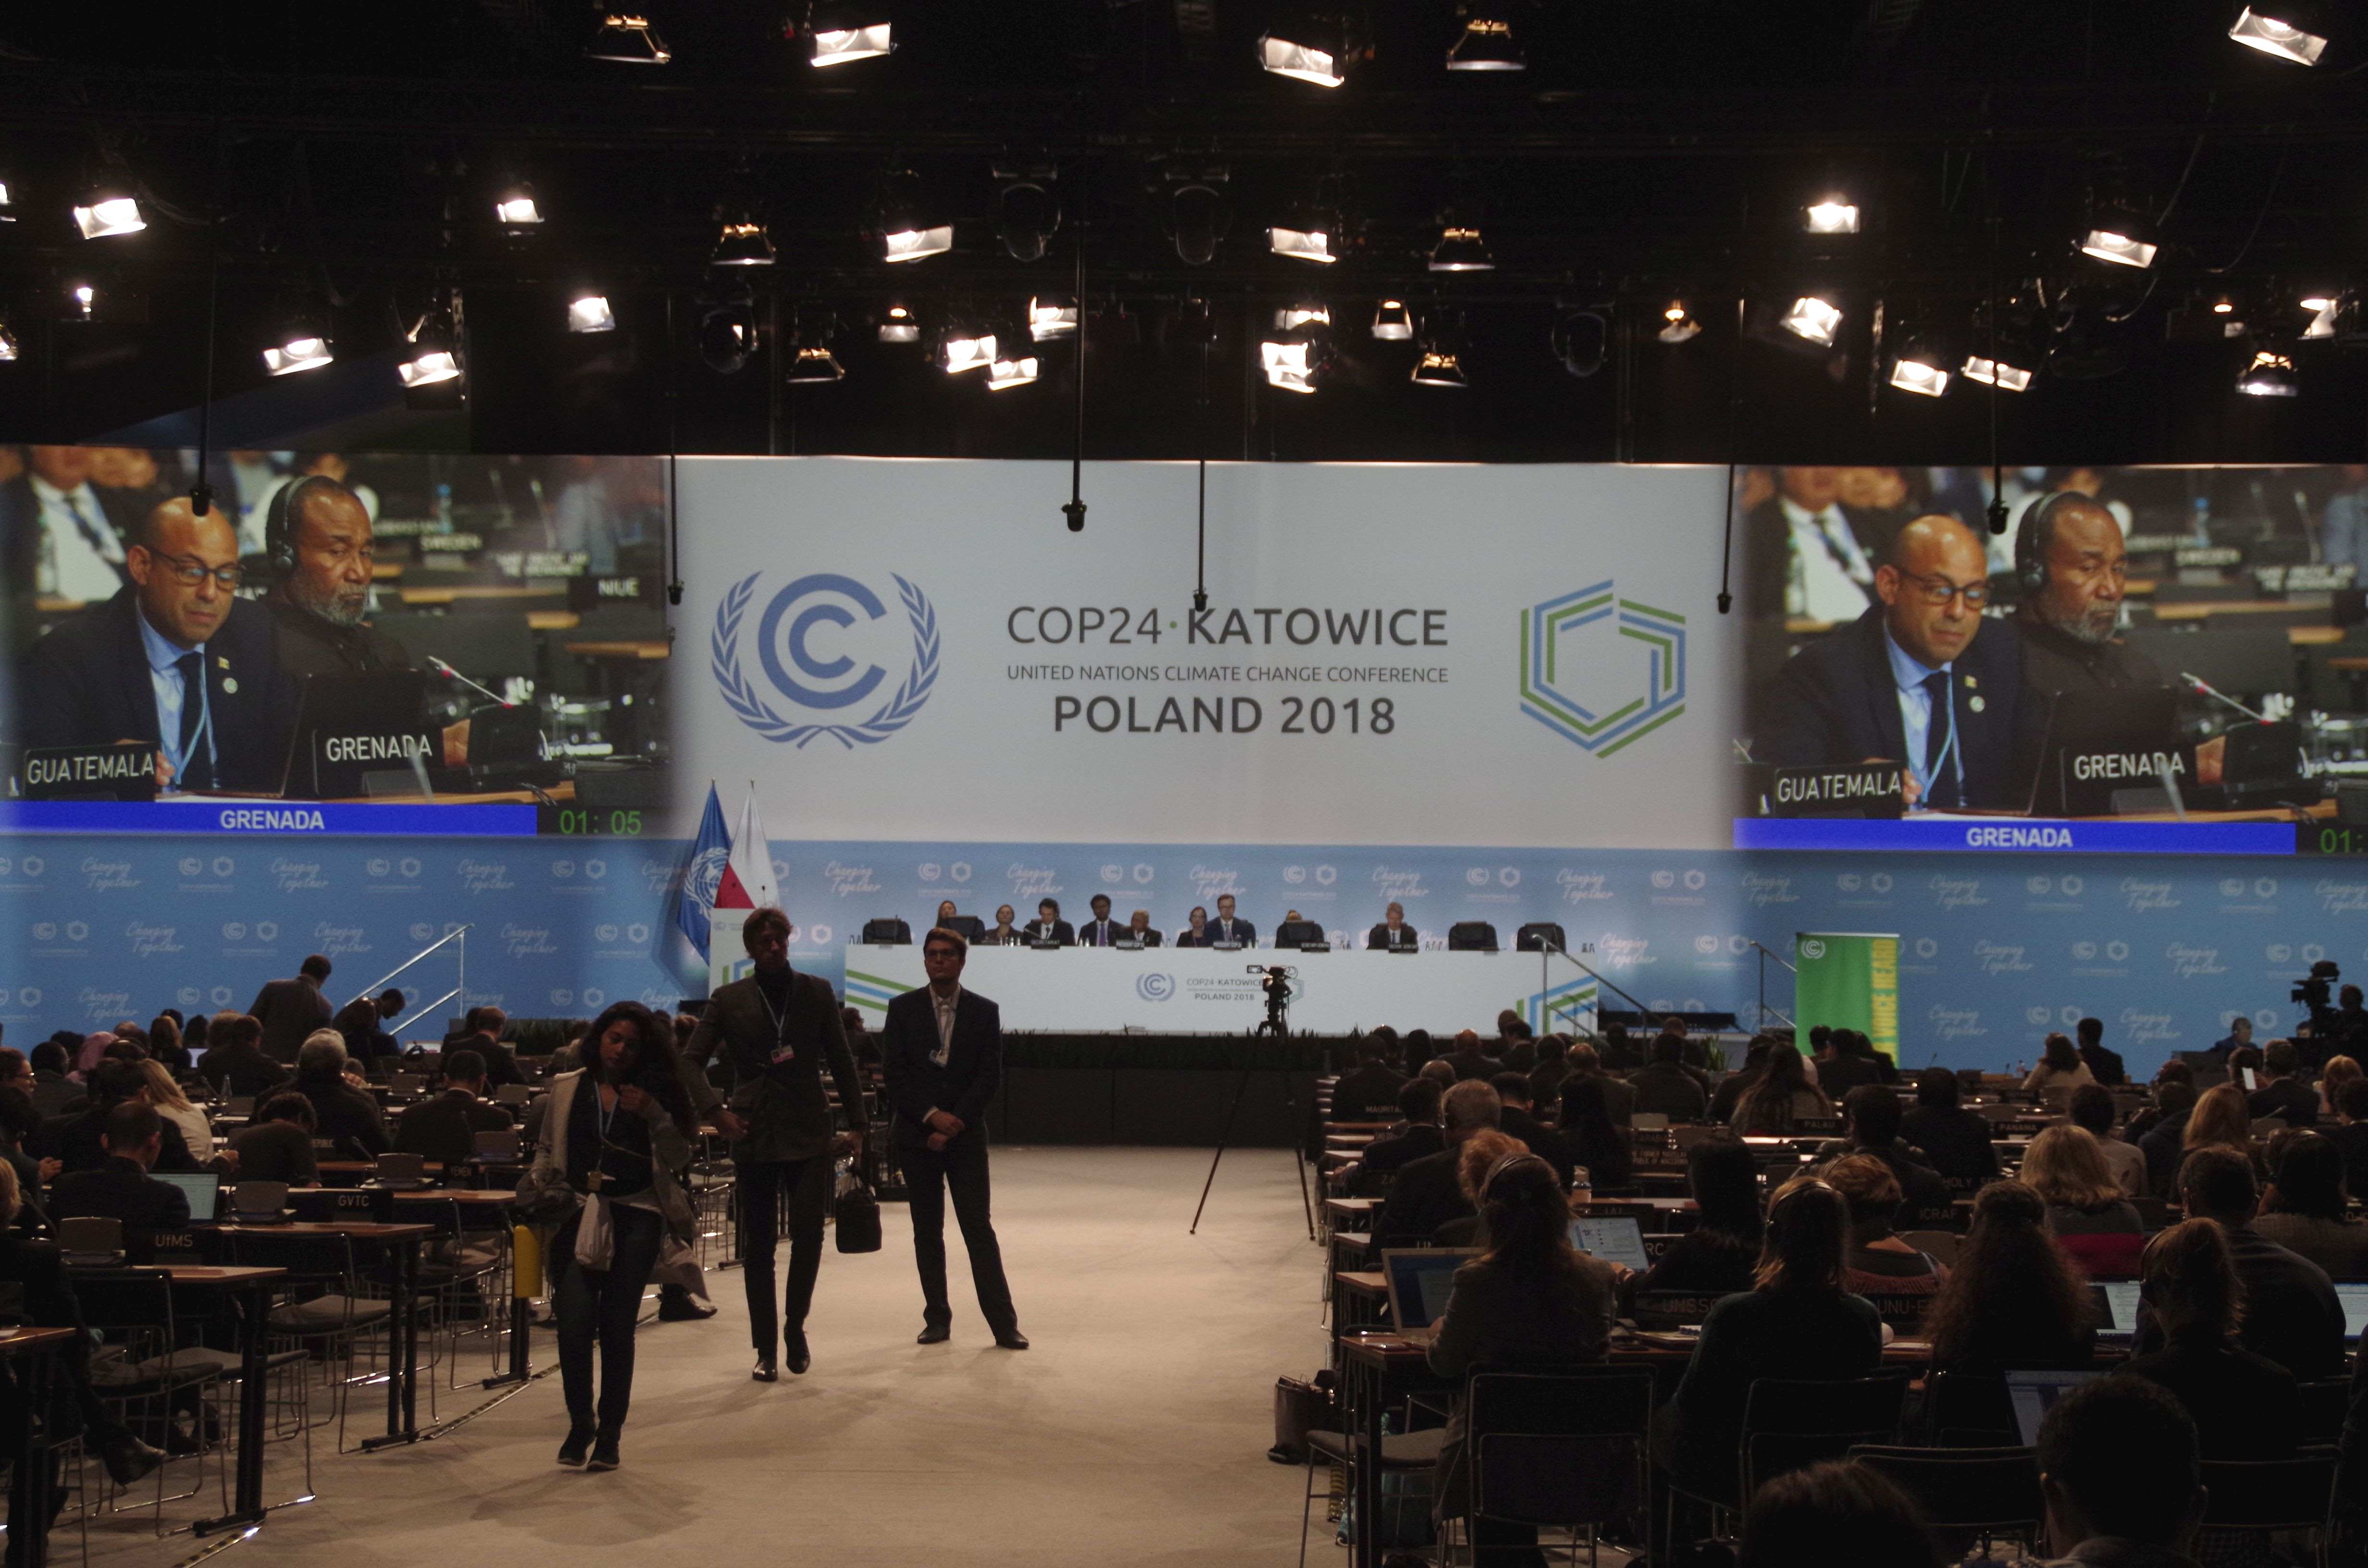 The Katowice Climate Change Conference Cop 24 Analysis